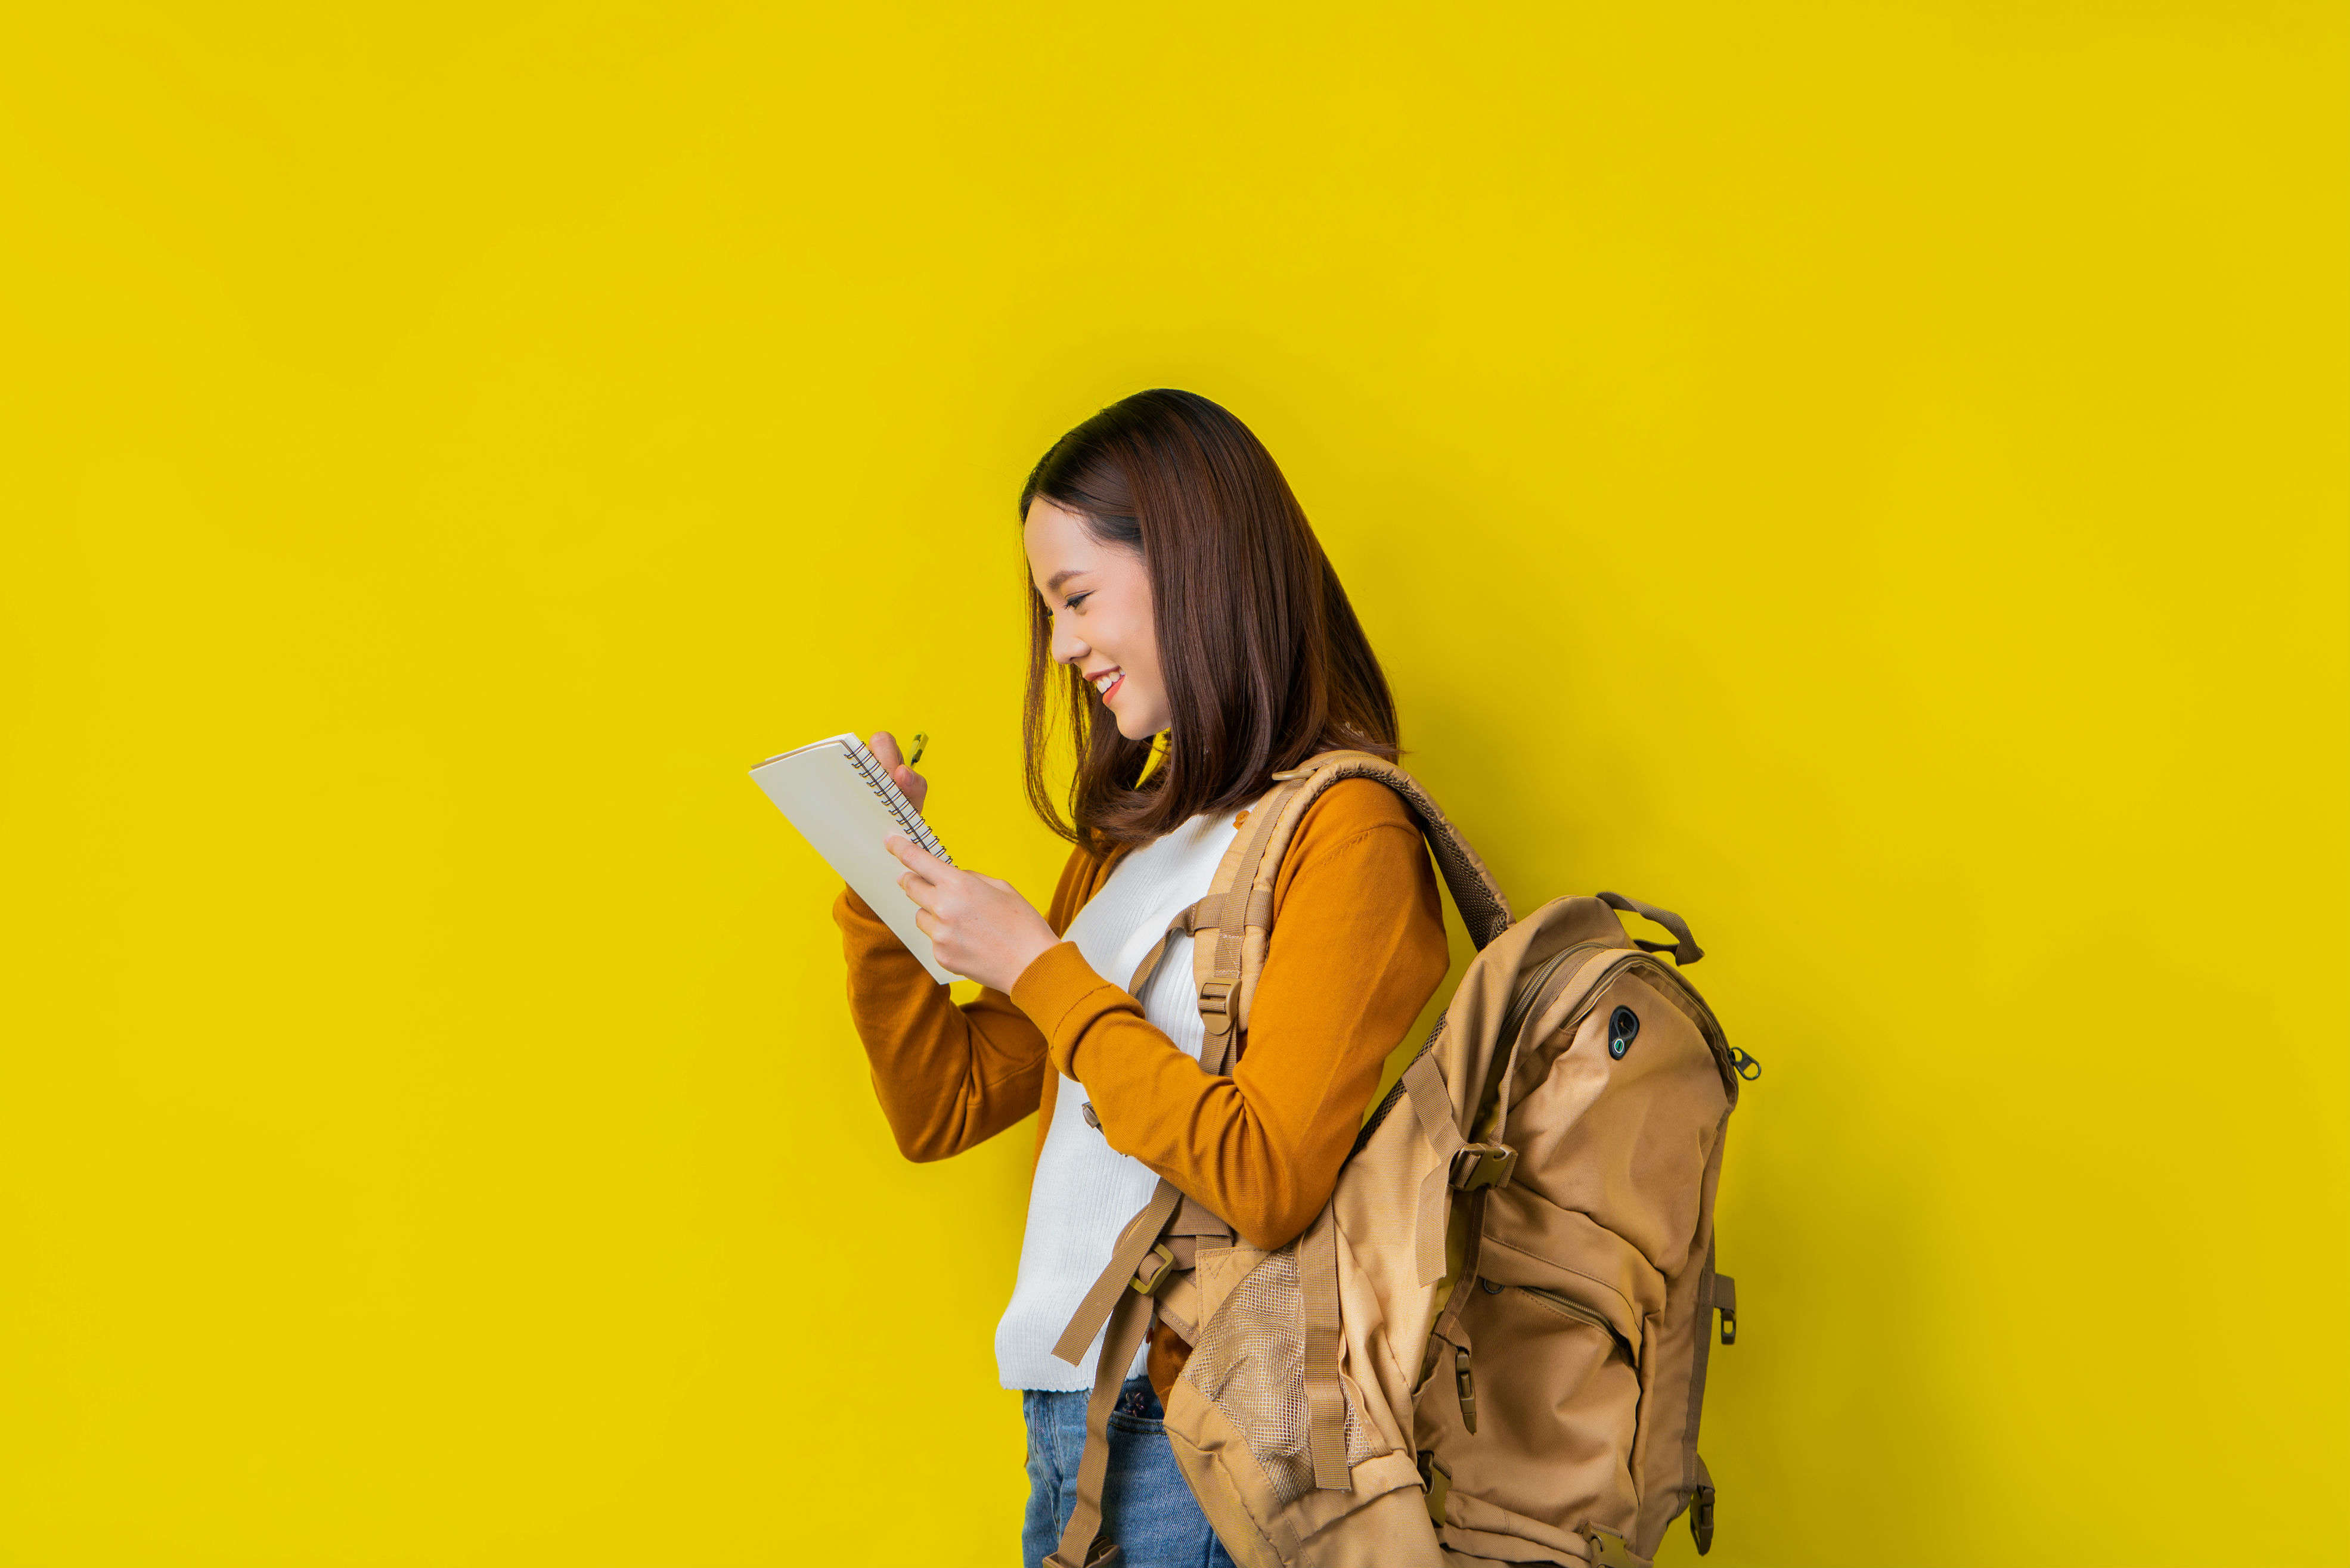 All about student discounts for travelling